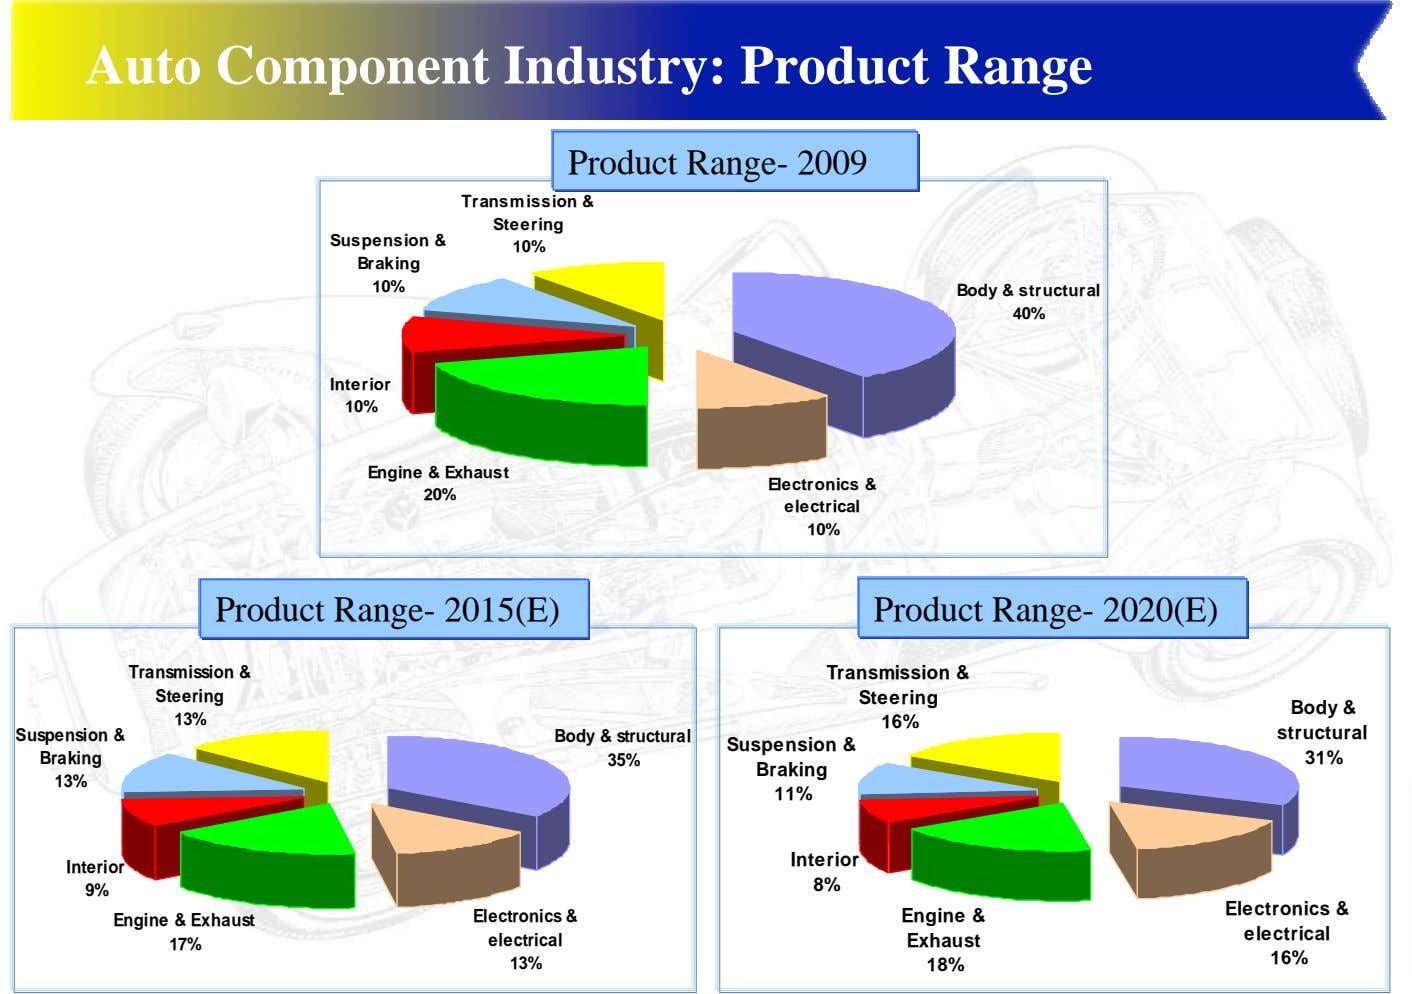 Auto Component Industry: Product Range Product Range- 2009 Transmission & Steering Suspension & 10% Braking